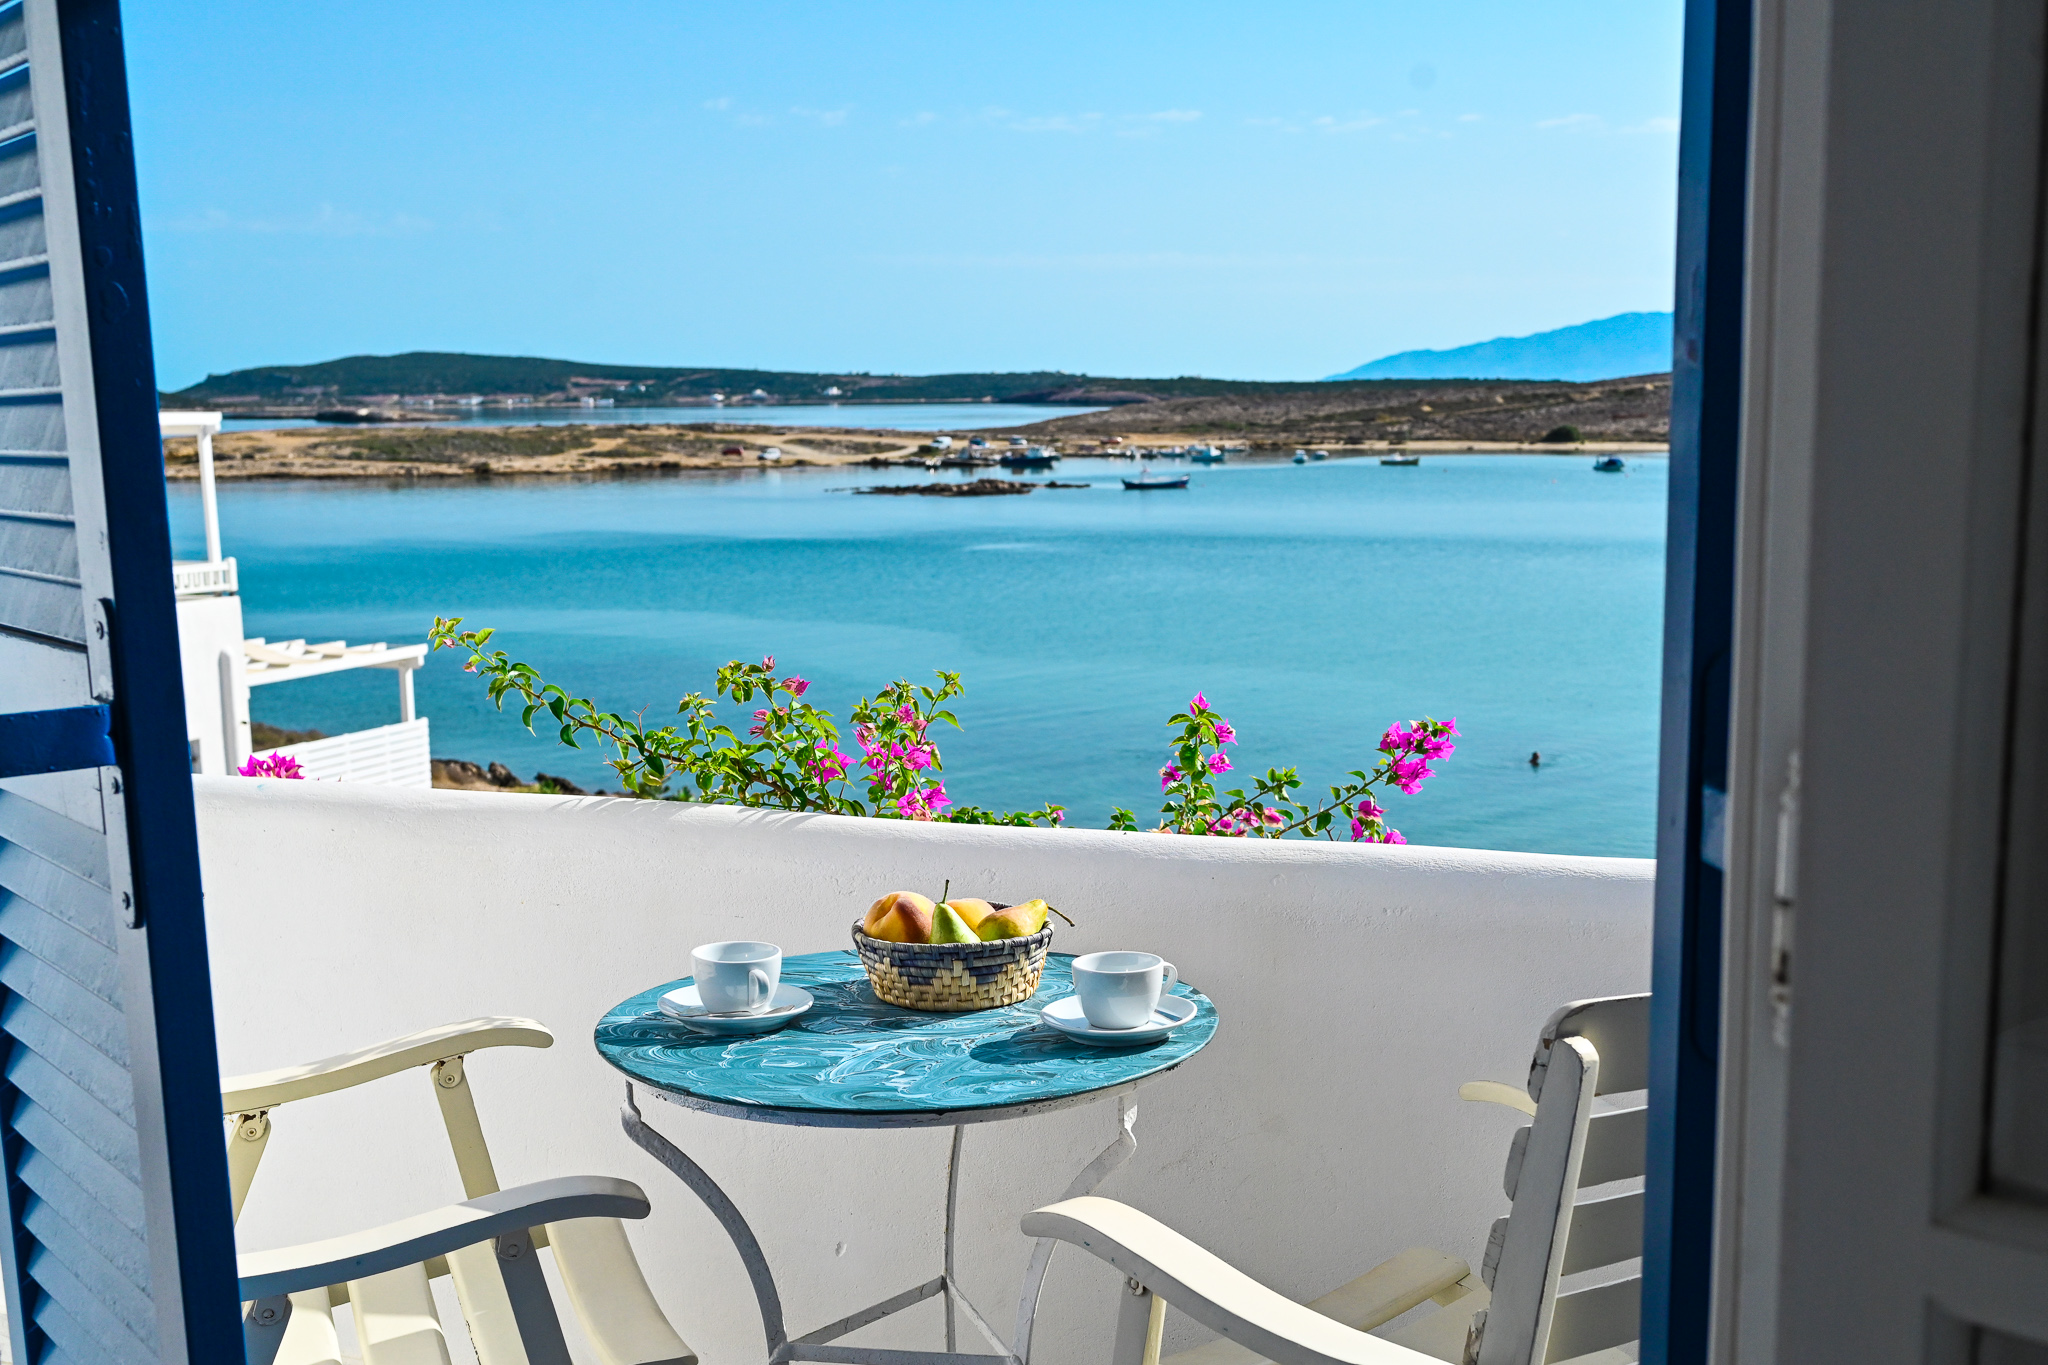 Bocamviglies rooms by the sea - Naoussa - Paros